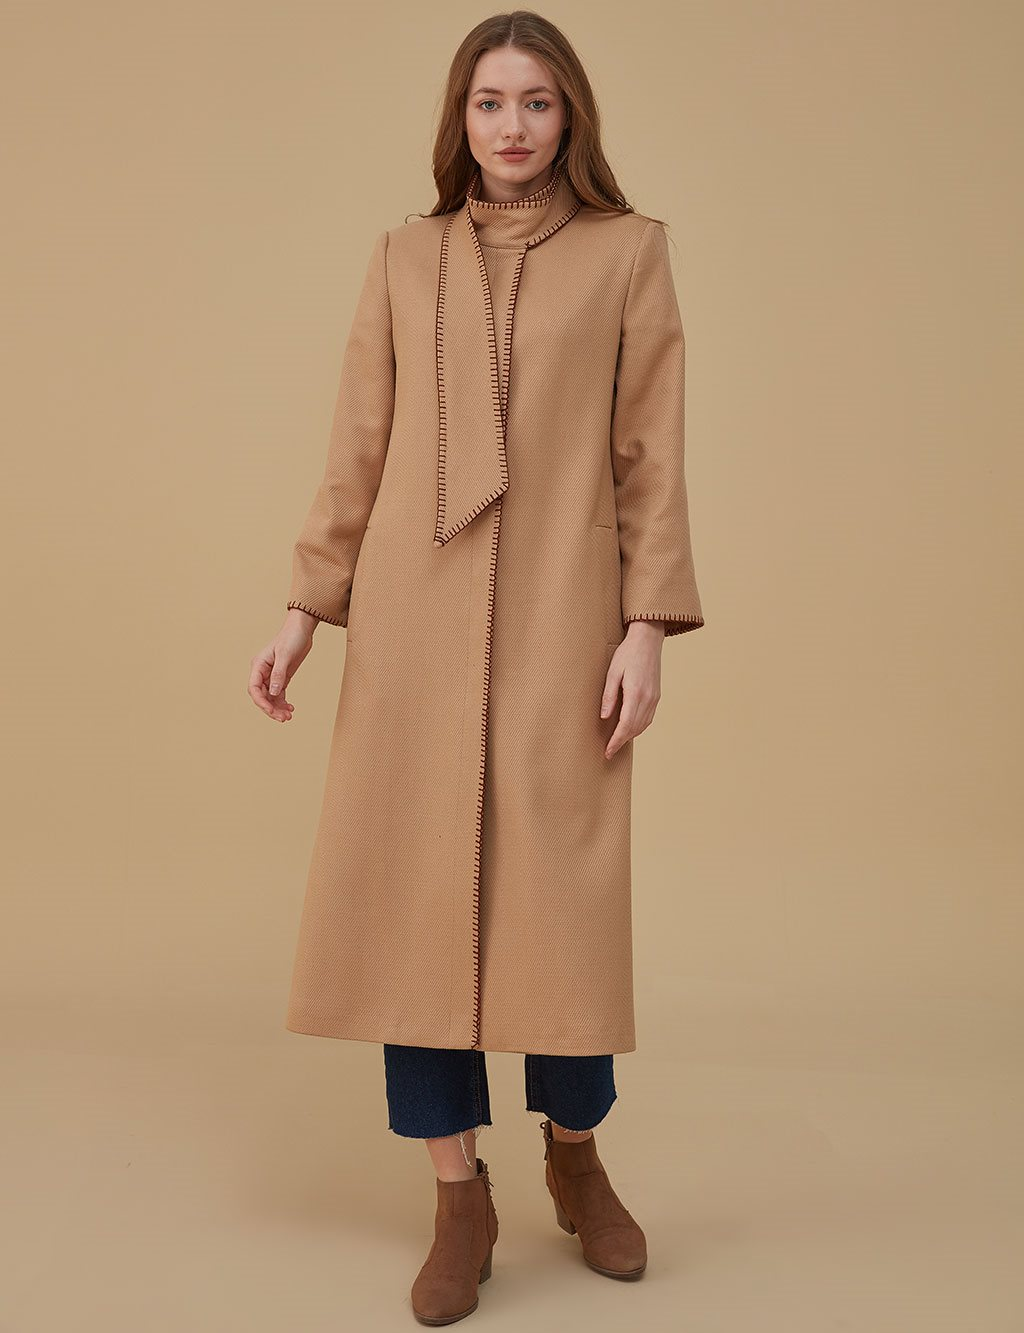 Collar Detailed Coat A9 17076 Beige